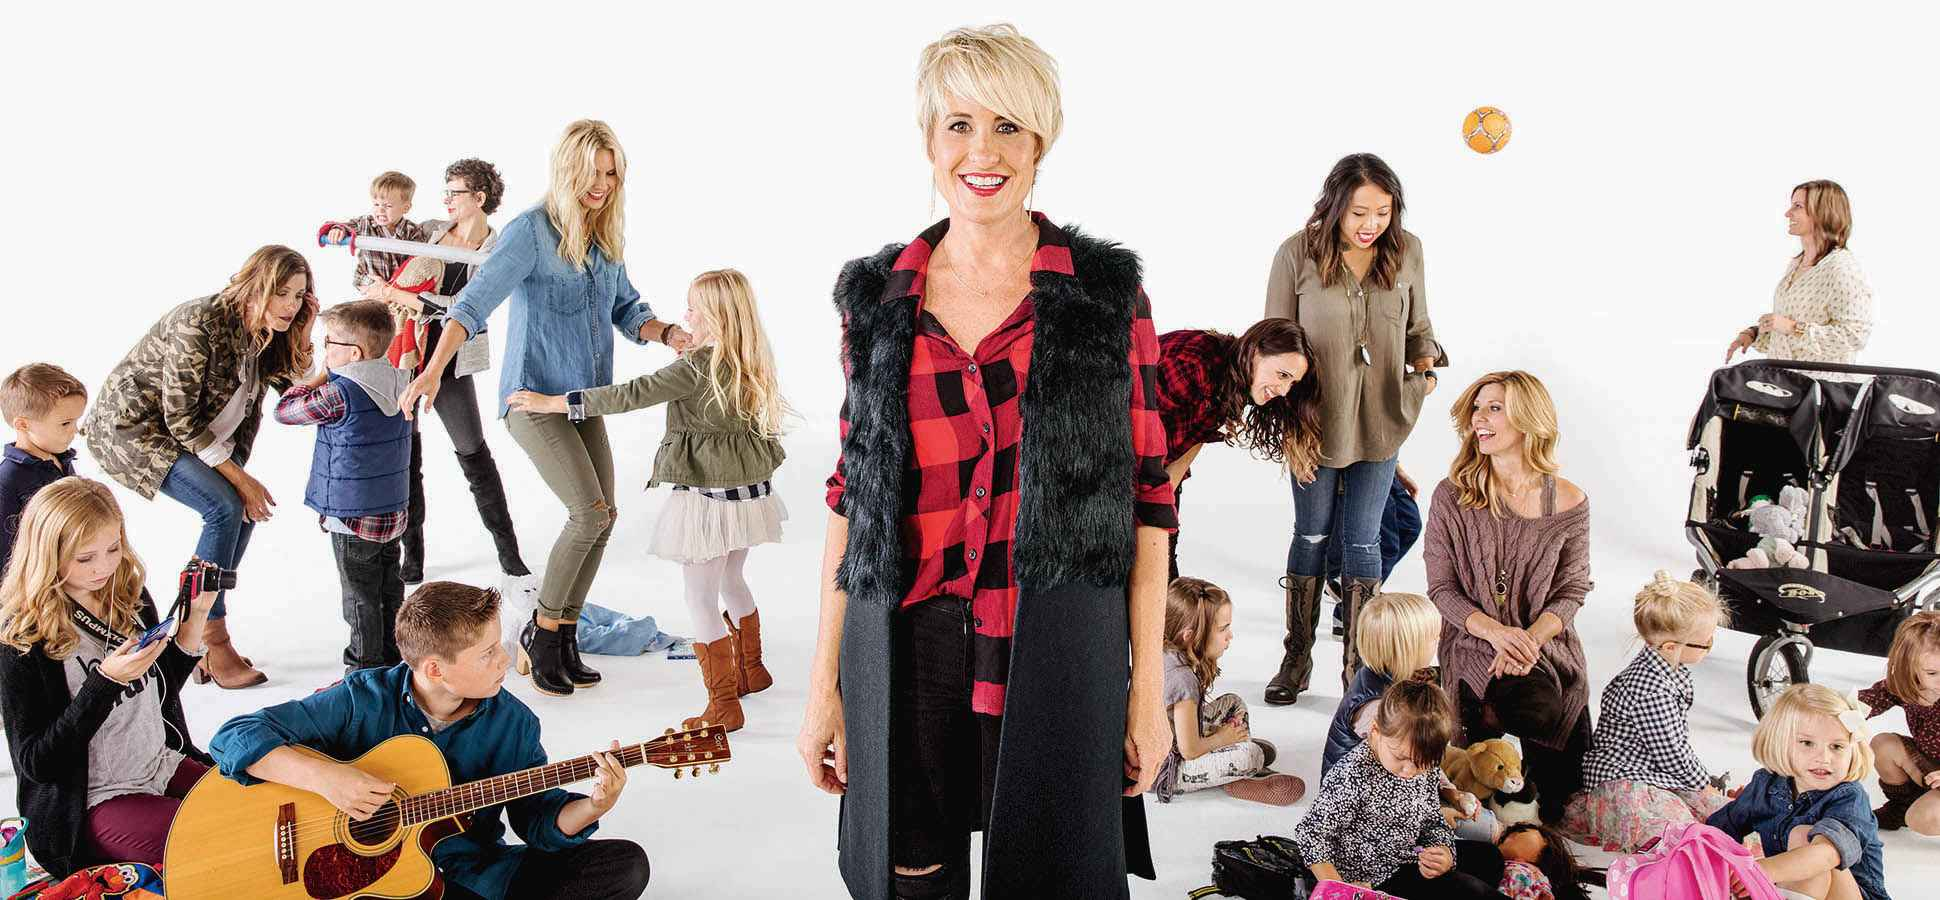 c27f80e2 Megan Tamte, surrounded by her Evereve-clad customers, found inspiration  from reality TV - and from her frustrating shopping experiences as a young  mother.